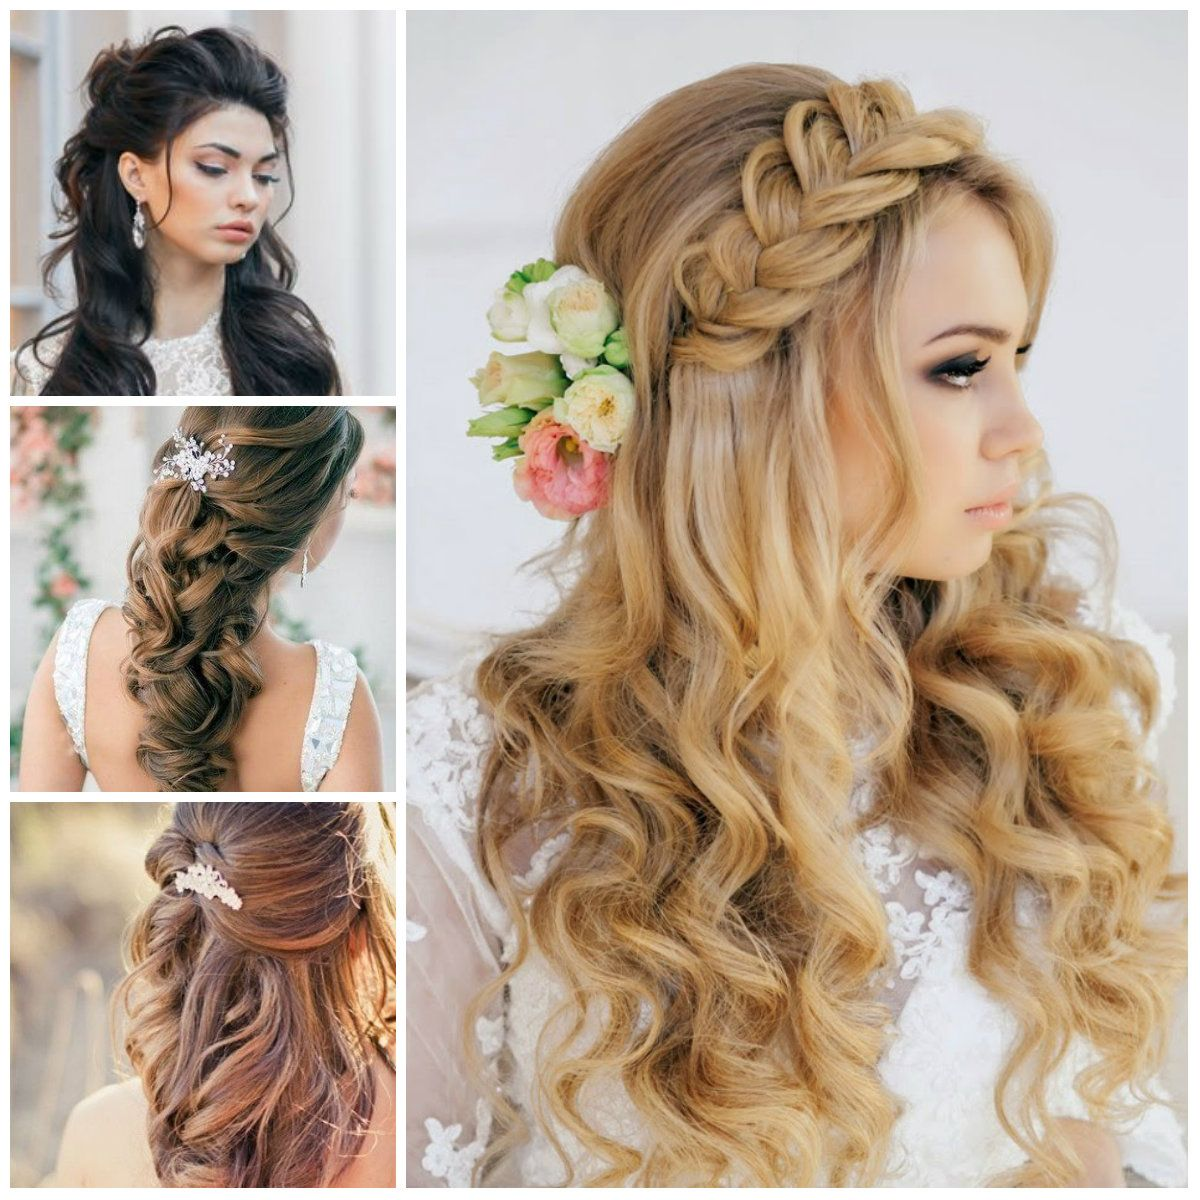 Wedding Party Hairstyle For Thin Hair: Wedding Half Up Half Down Hairstyles For 2016